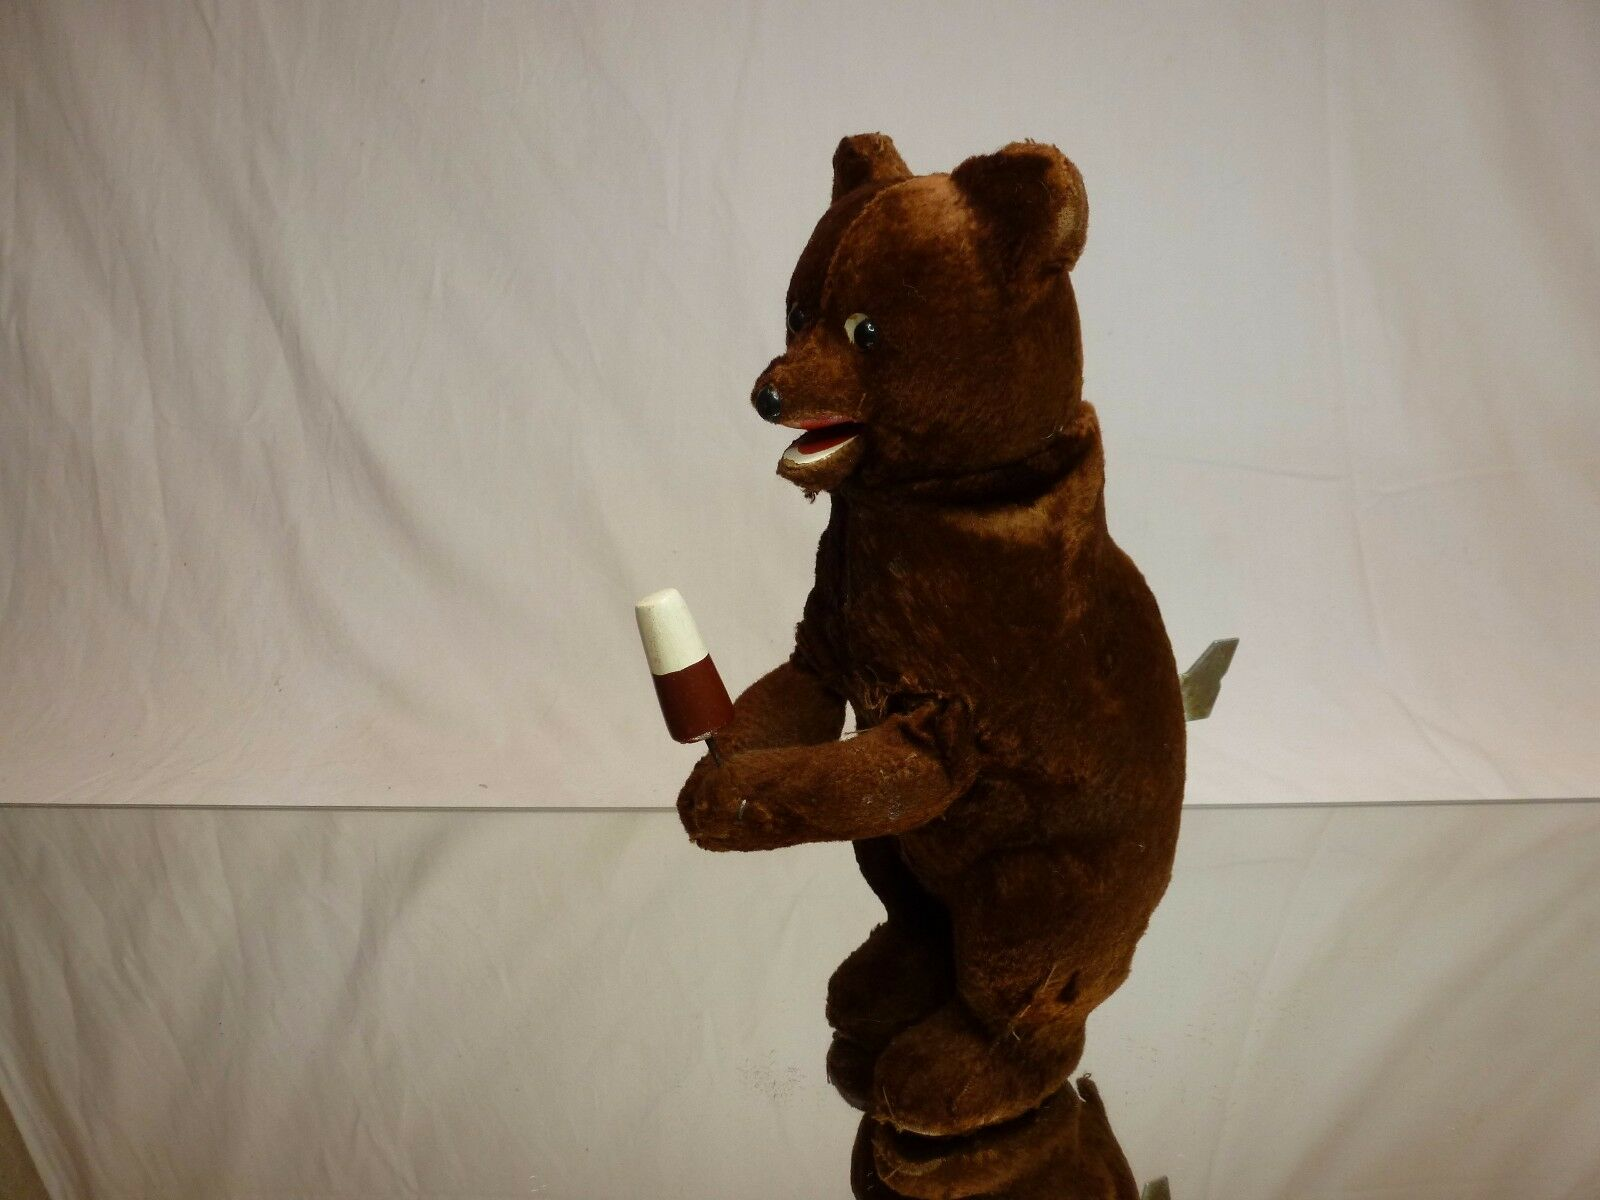 VINTAGE ANTIQUE 60's MOHAIR RUSSIAN USSR WIND-UP BEAR - H24.0cm - EXTREMELY RARE